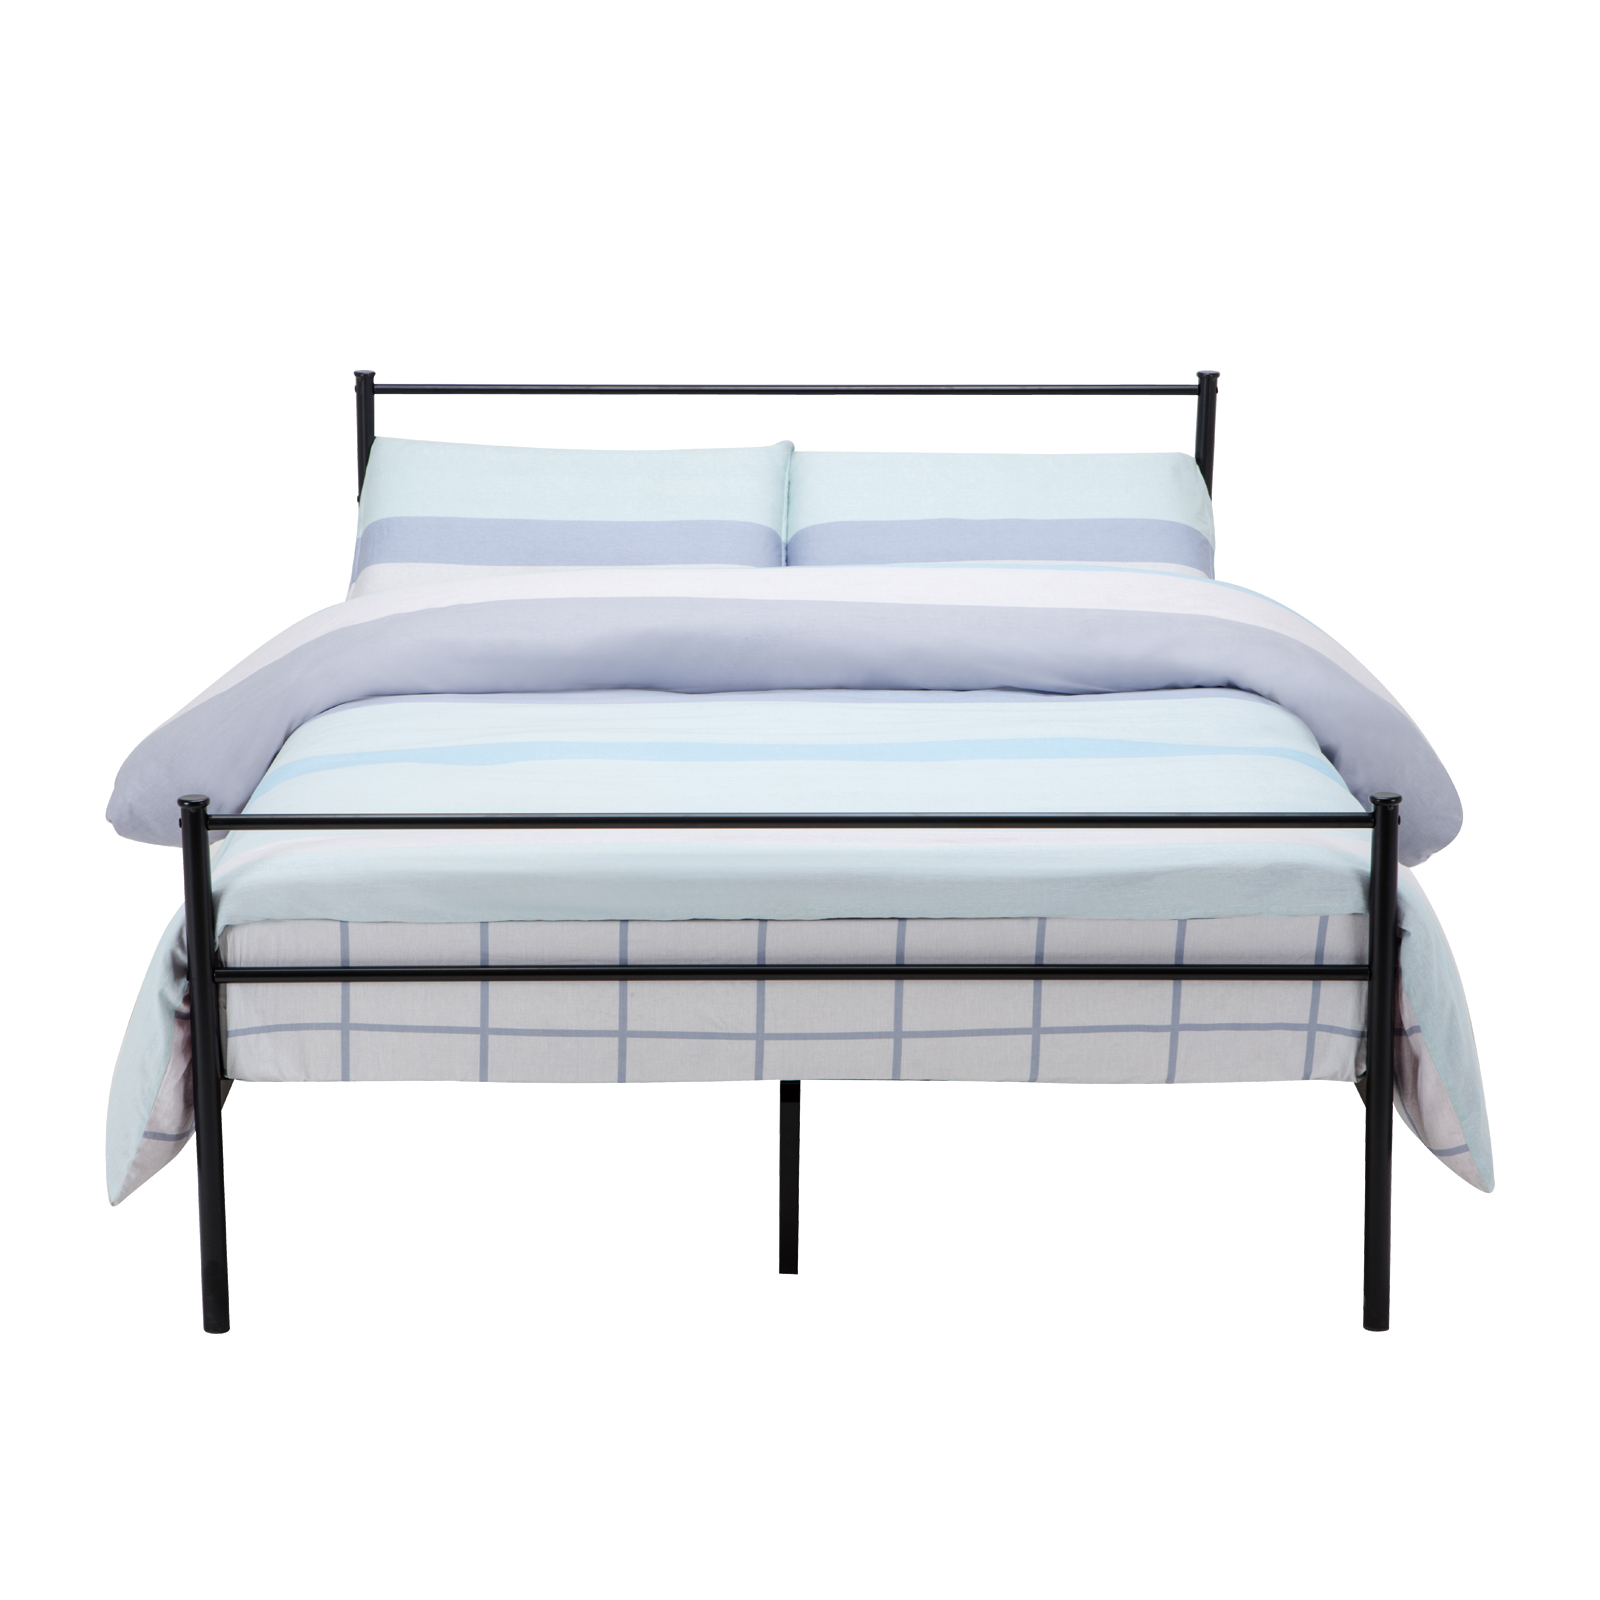 Twin full queen size metal bed frame platform headboards 6 for Twin mattress and frame